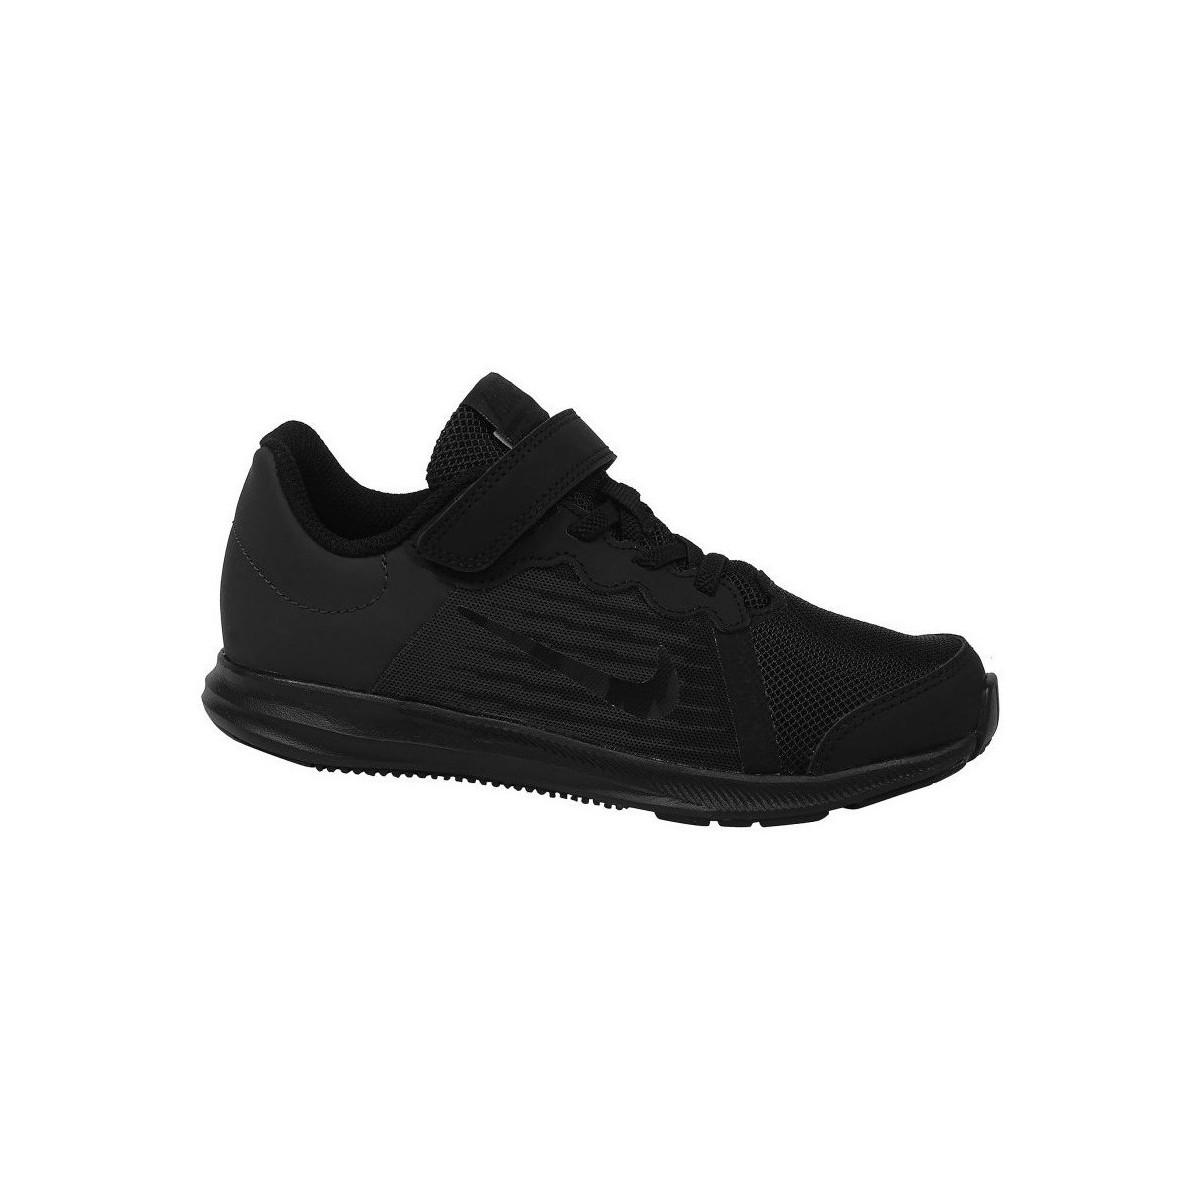 Sneakers Nike  Downshifter 8 PS